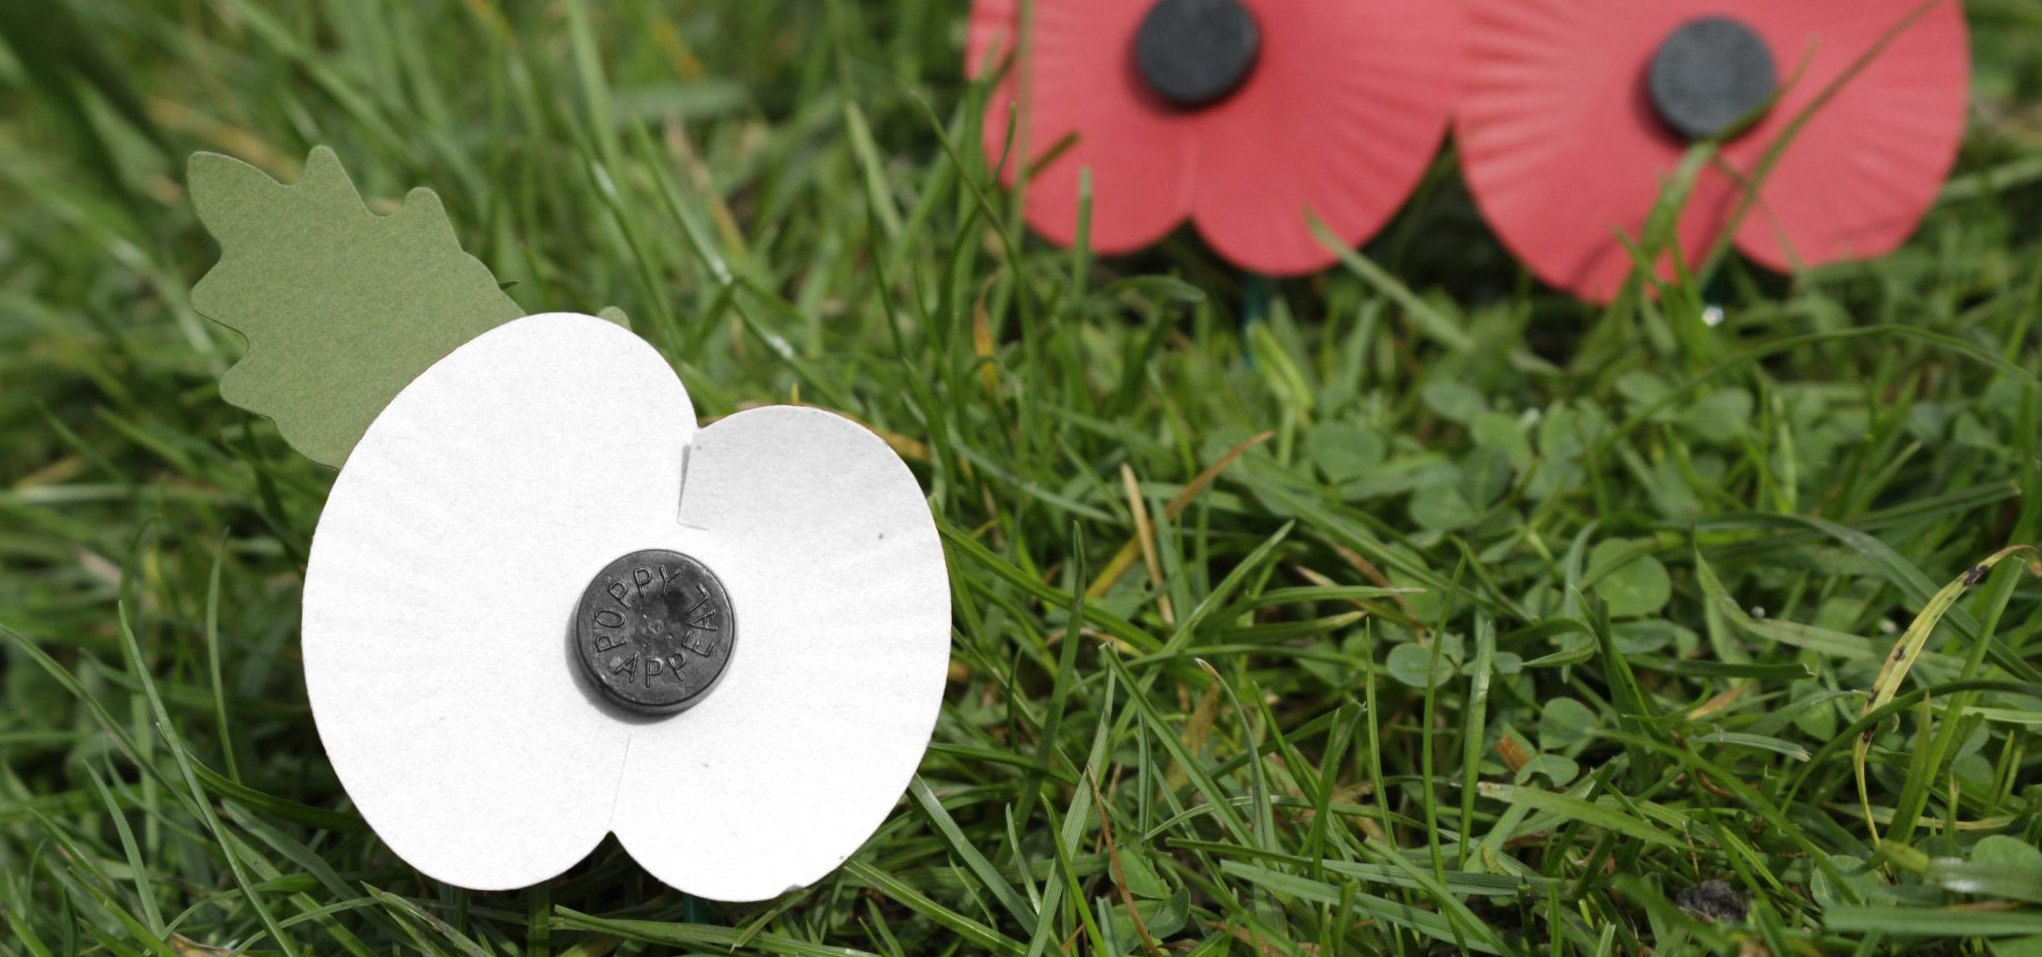 Distribution of white poppies in schools causes controversy - Co-operative News